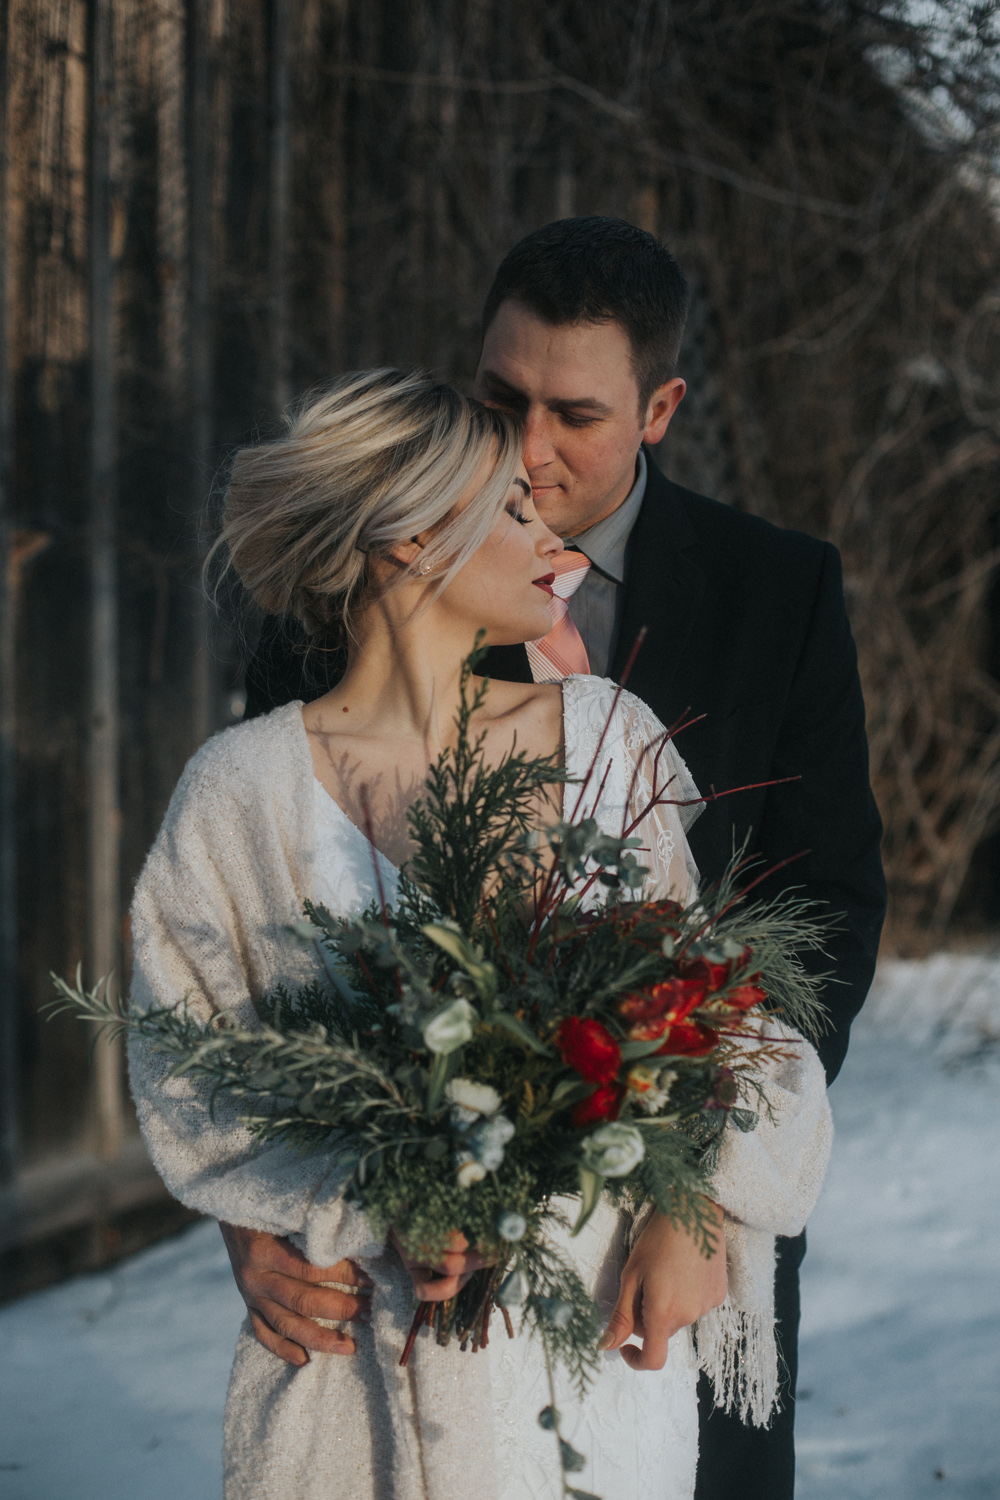 mnd_farm_winter_wedding_015.jpg